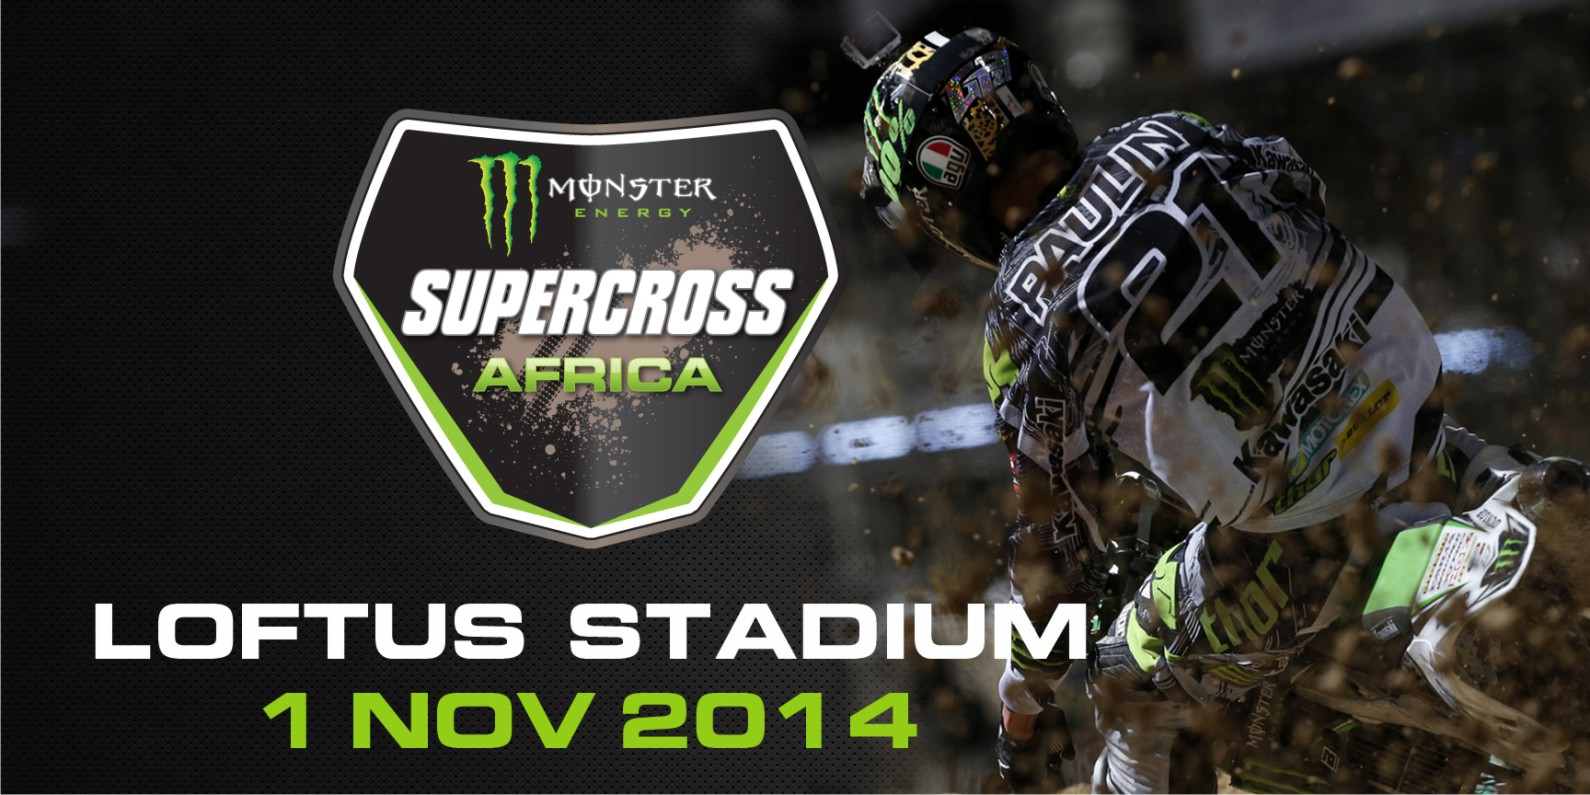 Monster Energy Supercross Africa is coming to Loftus Versfeld